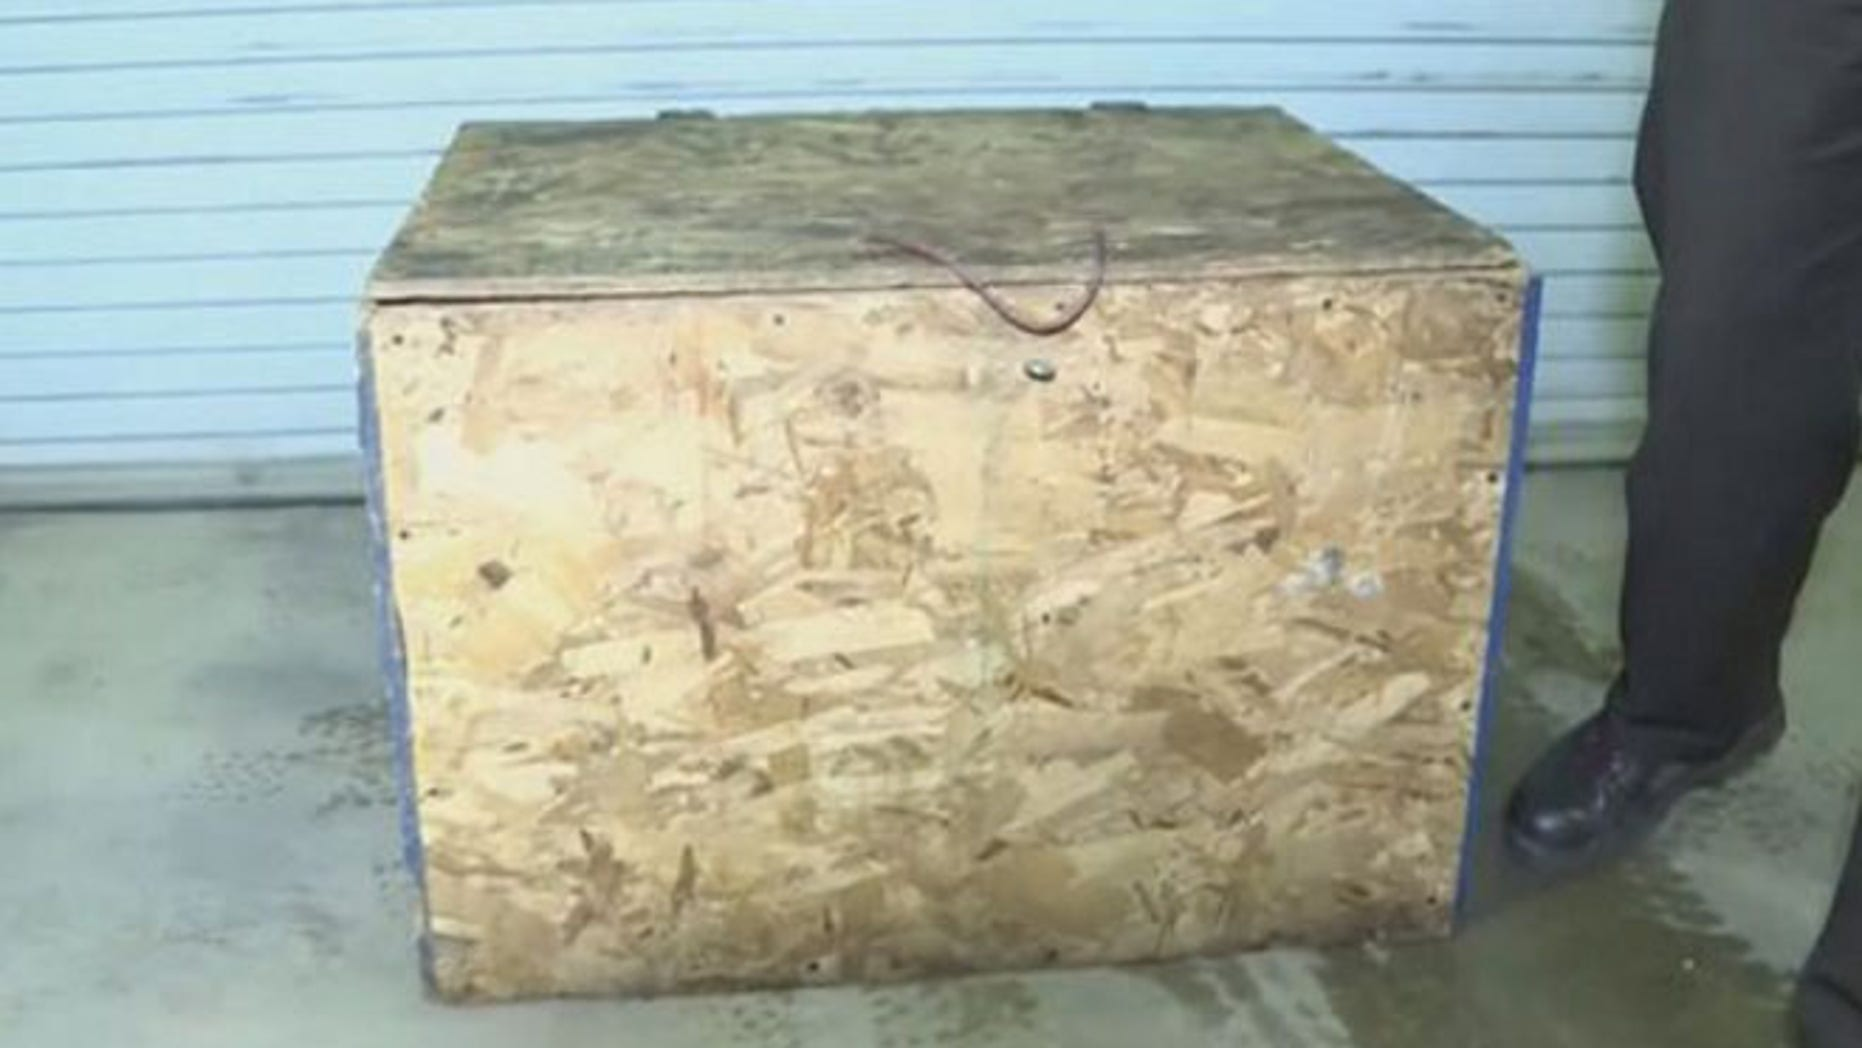 Authorities said they found a 3-year-old girl in Indiana sleeping inside a plywood box.